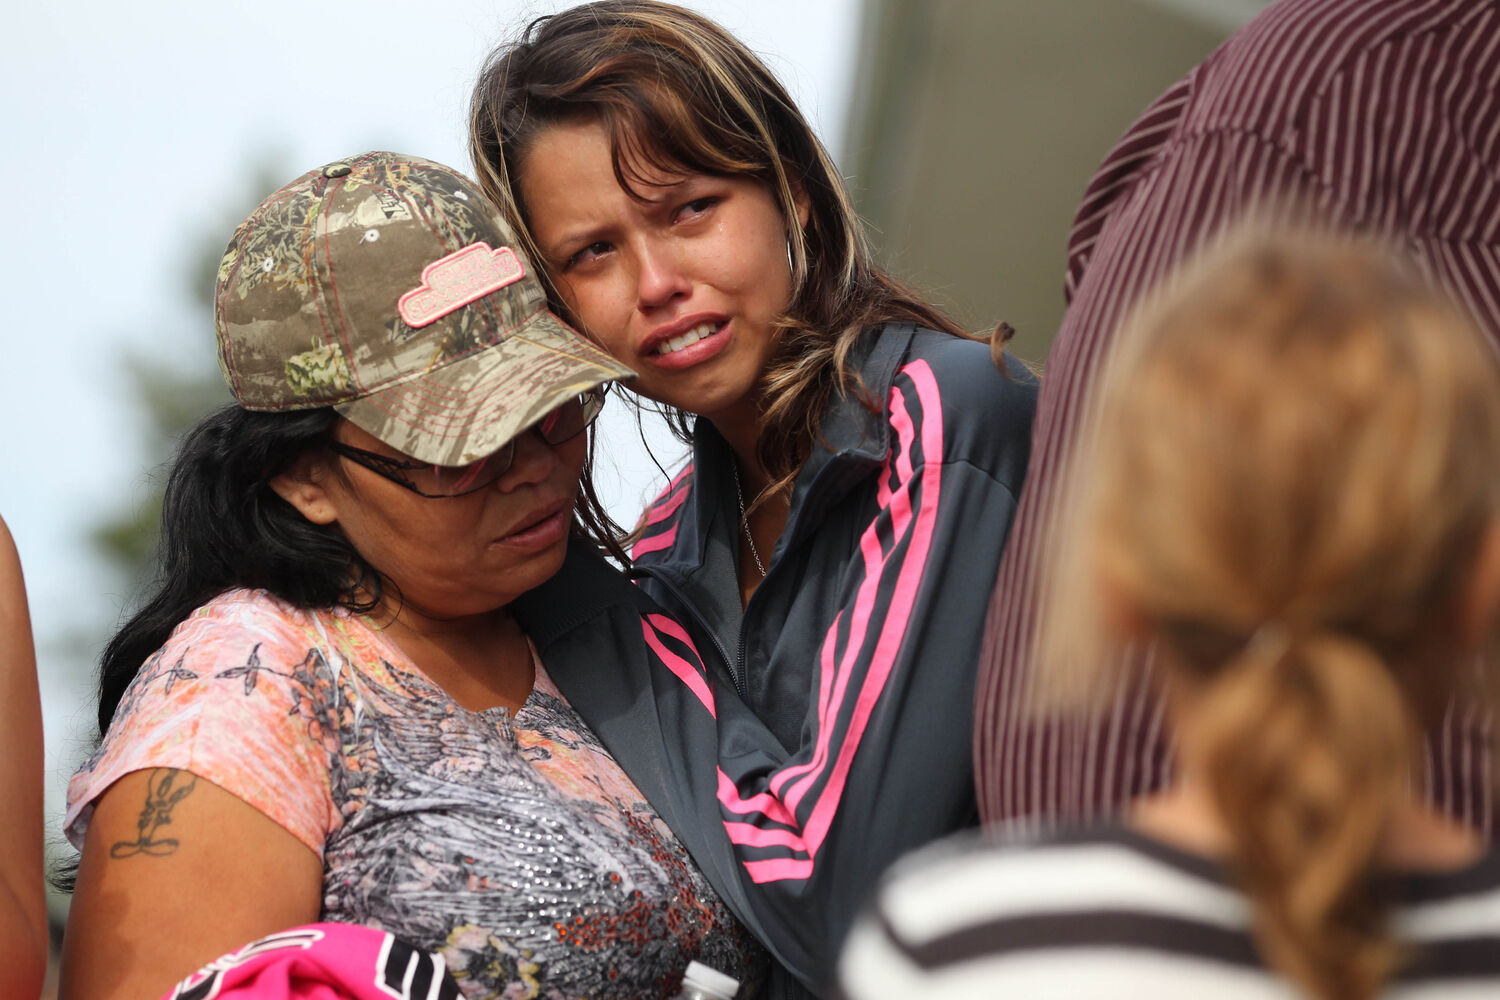 Family members of Tina Fontaine break down into tears after her body is taken away in a hearse after her funeral in Sagkeeng First Nation Saturday. (Ruth Bonneville / The Winnipeg Free Press)